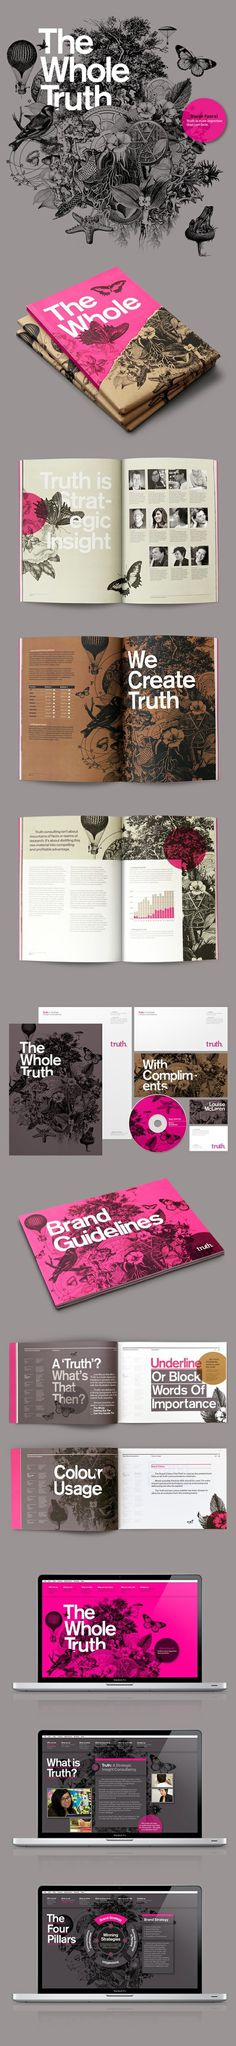 Truth Branding by Socio Design #illustration #layout